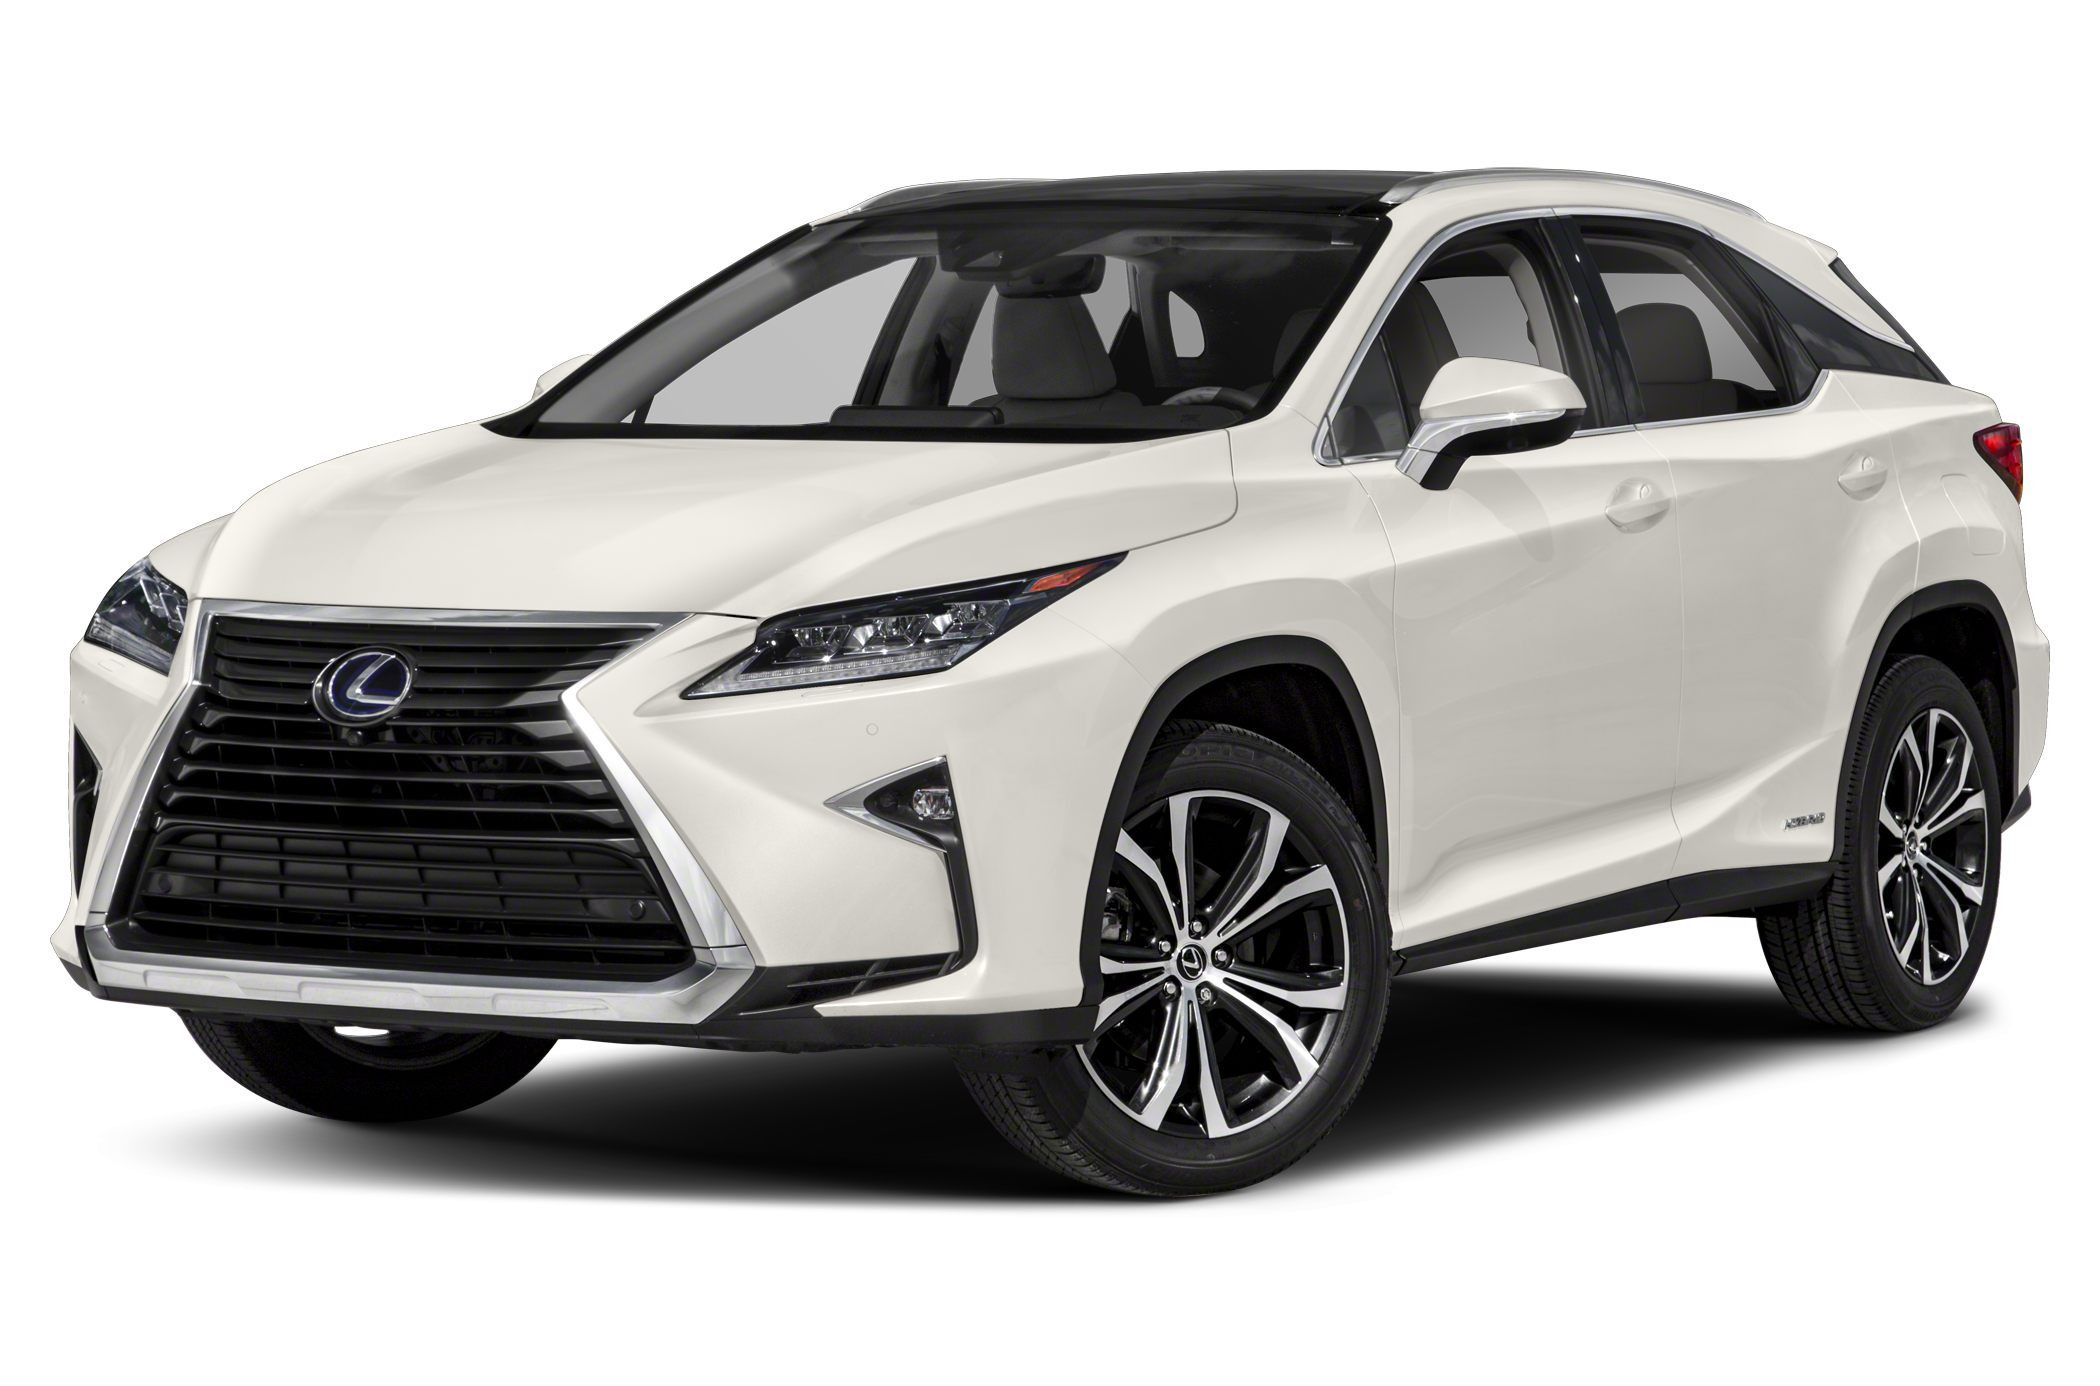 2019 Lexus Rx Check More At Http Www New Cars Club 2017 06 22